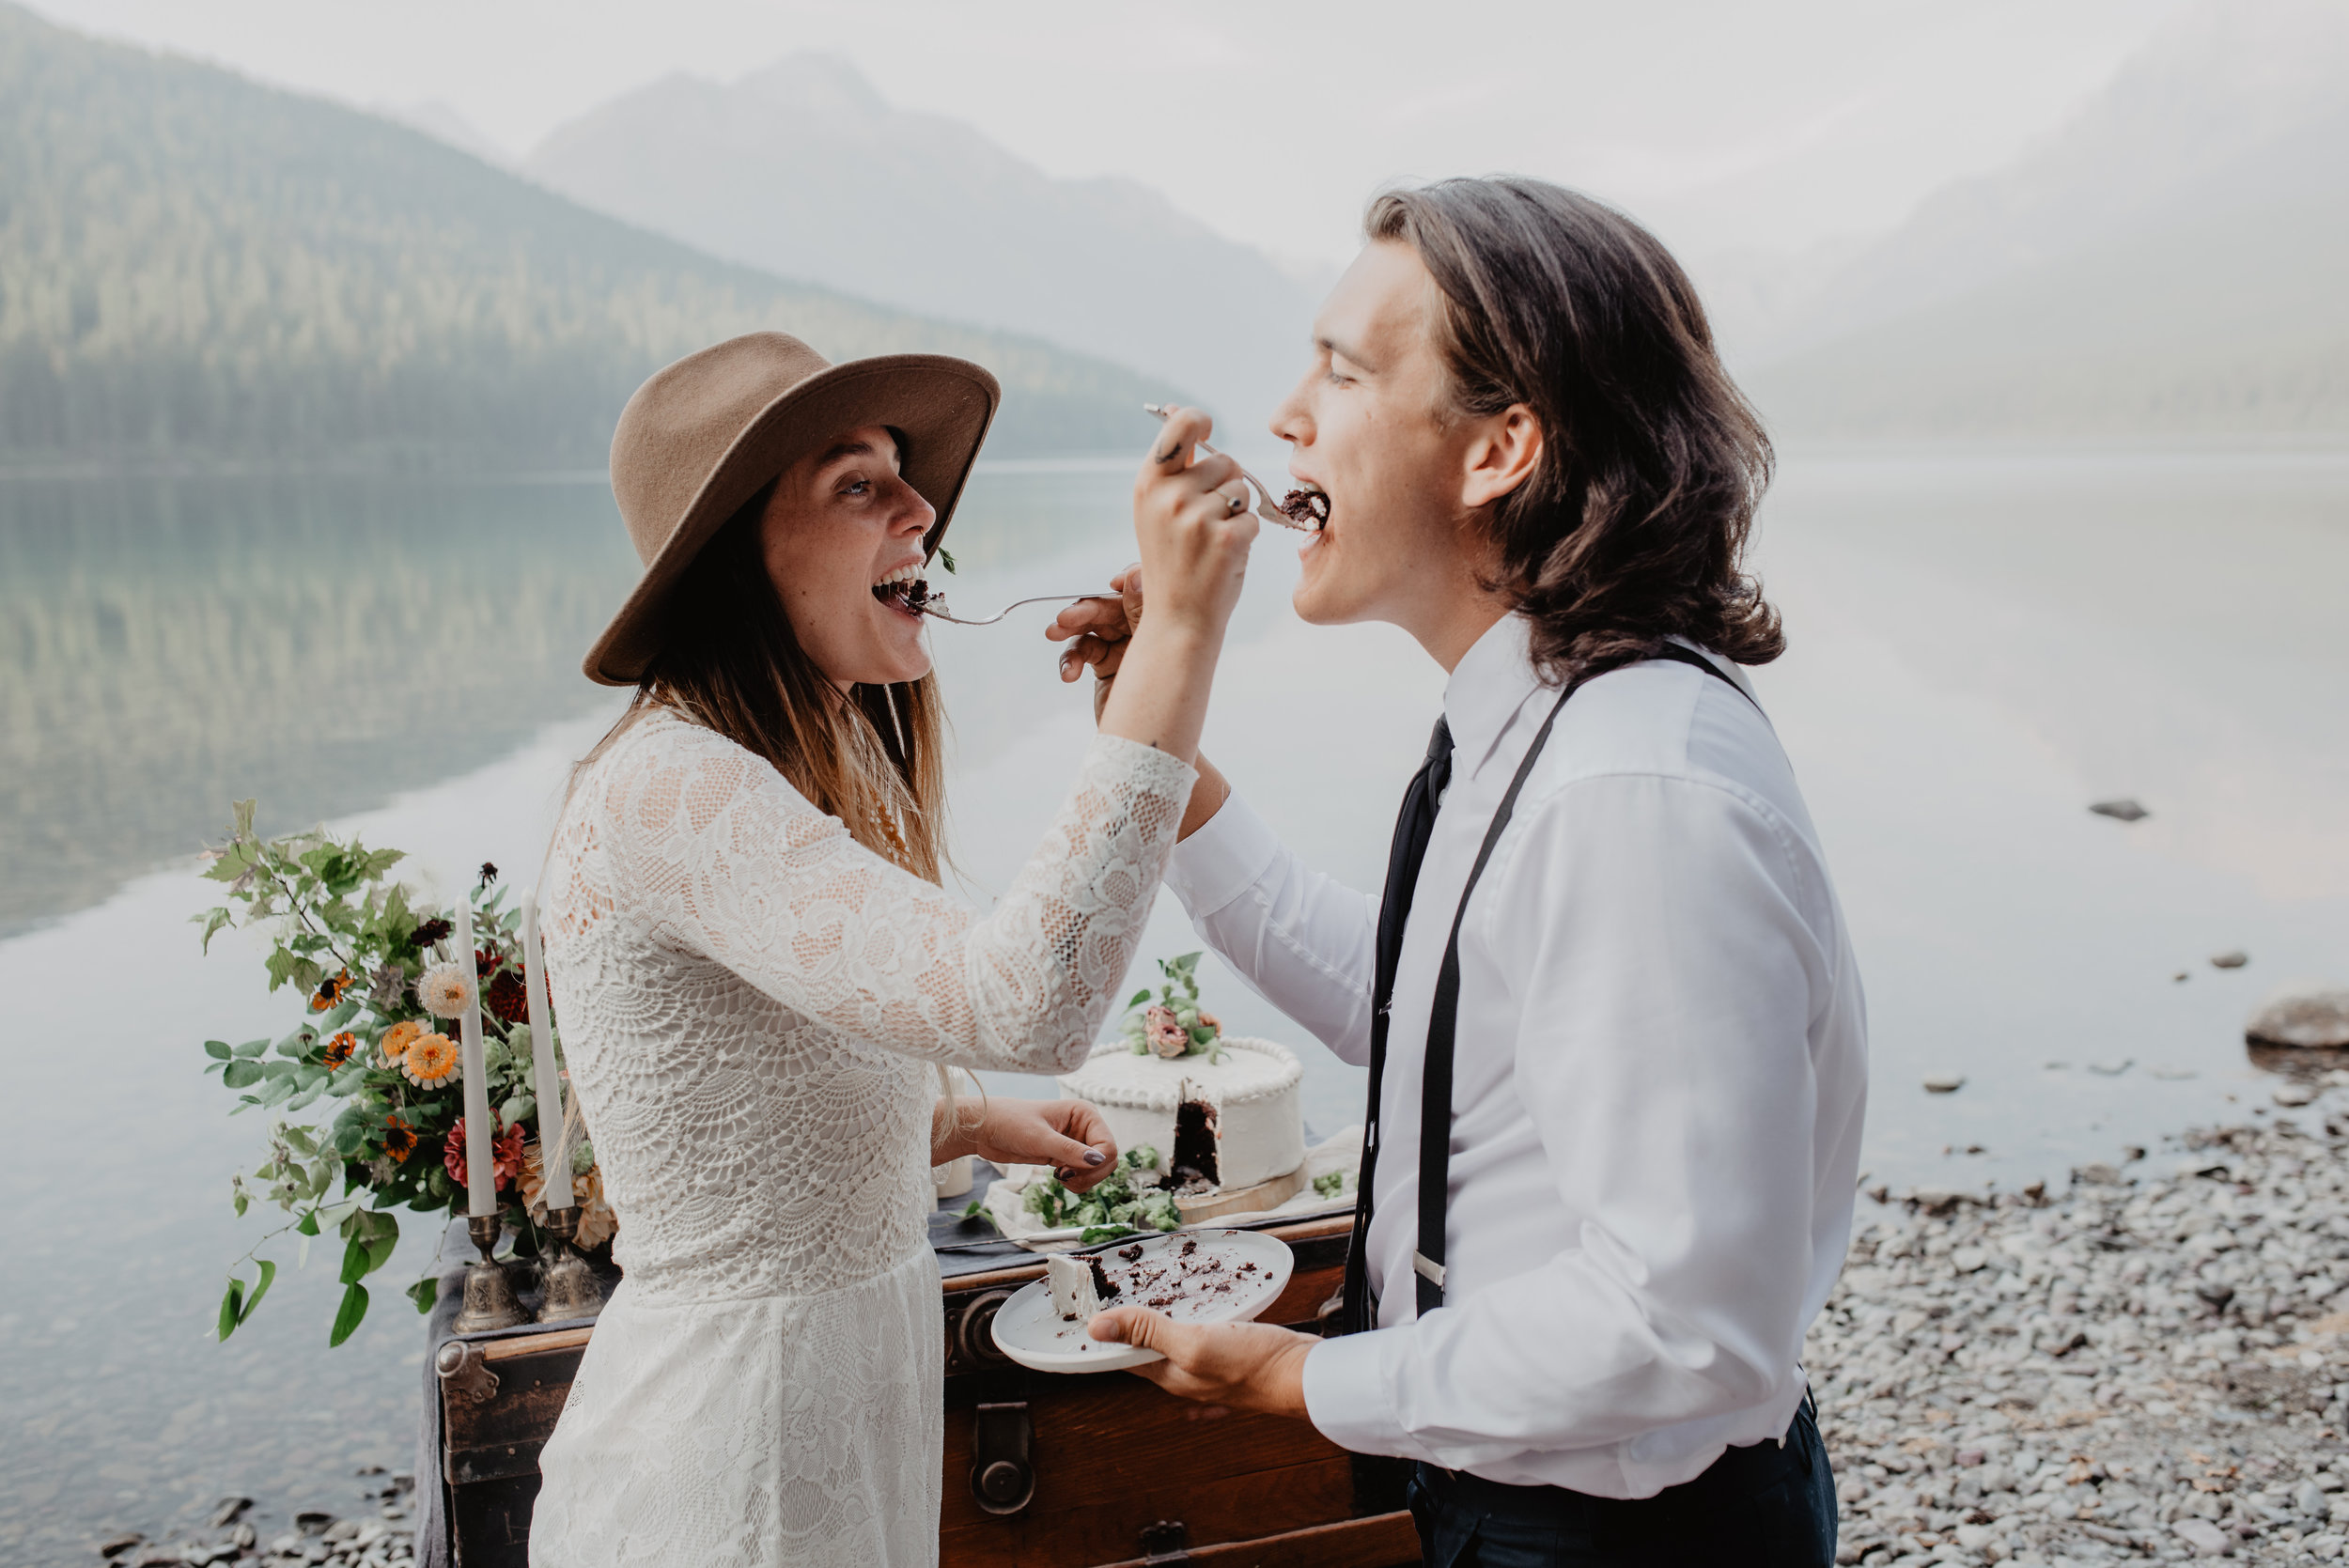 Outdoor elopement portrait of engaged couple feeding each other organic wedding cake at Glacier National Park MT